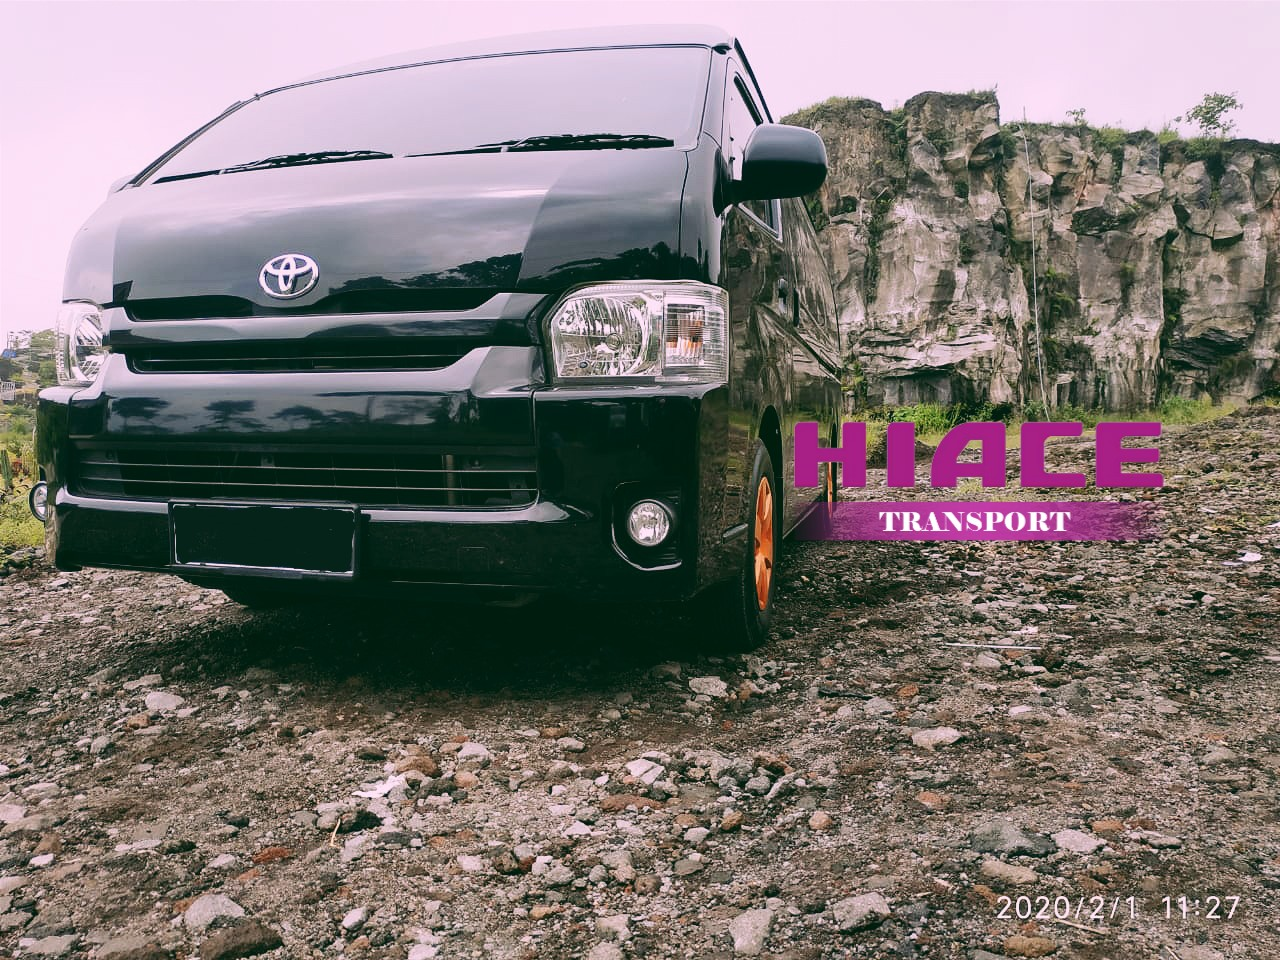 Sewa hiace transport